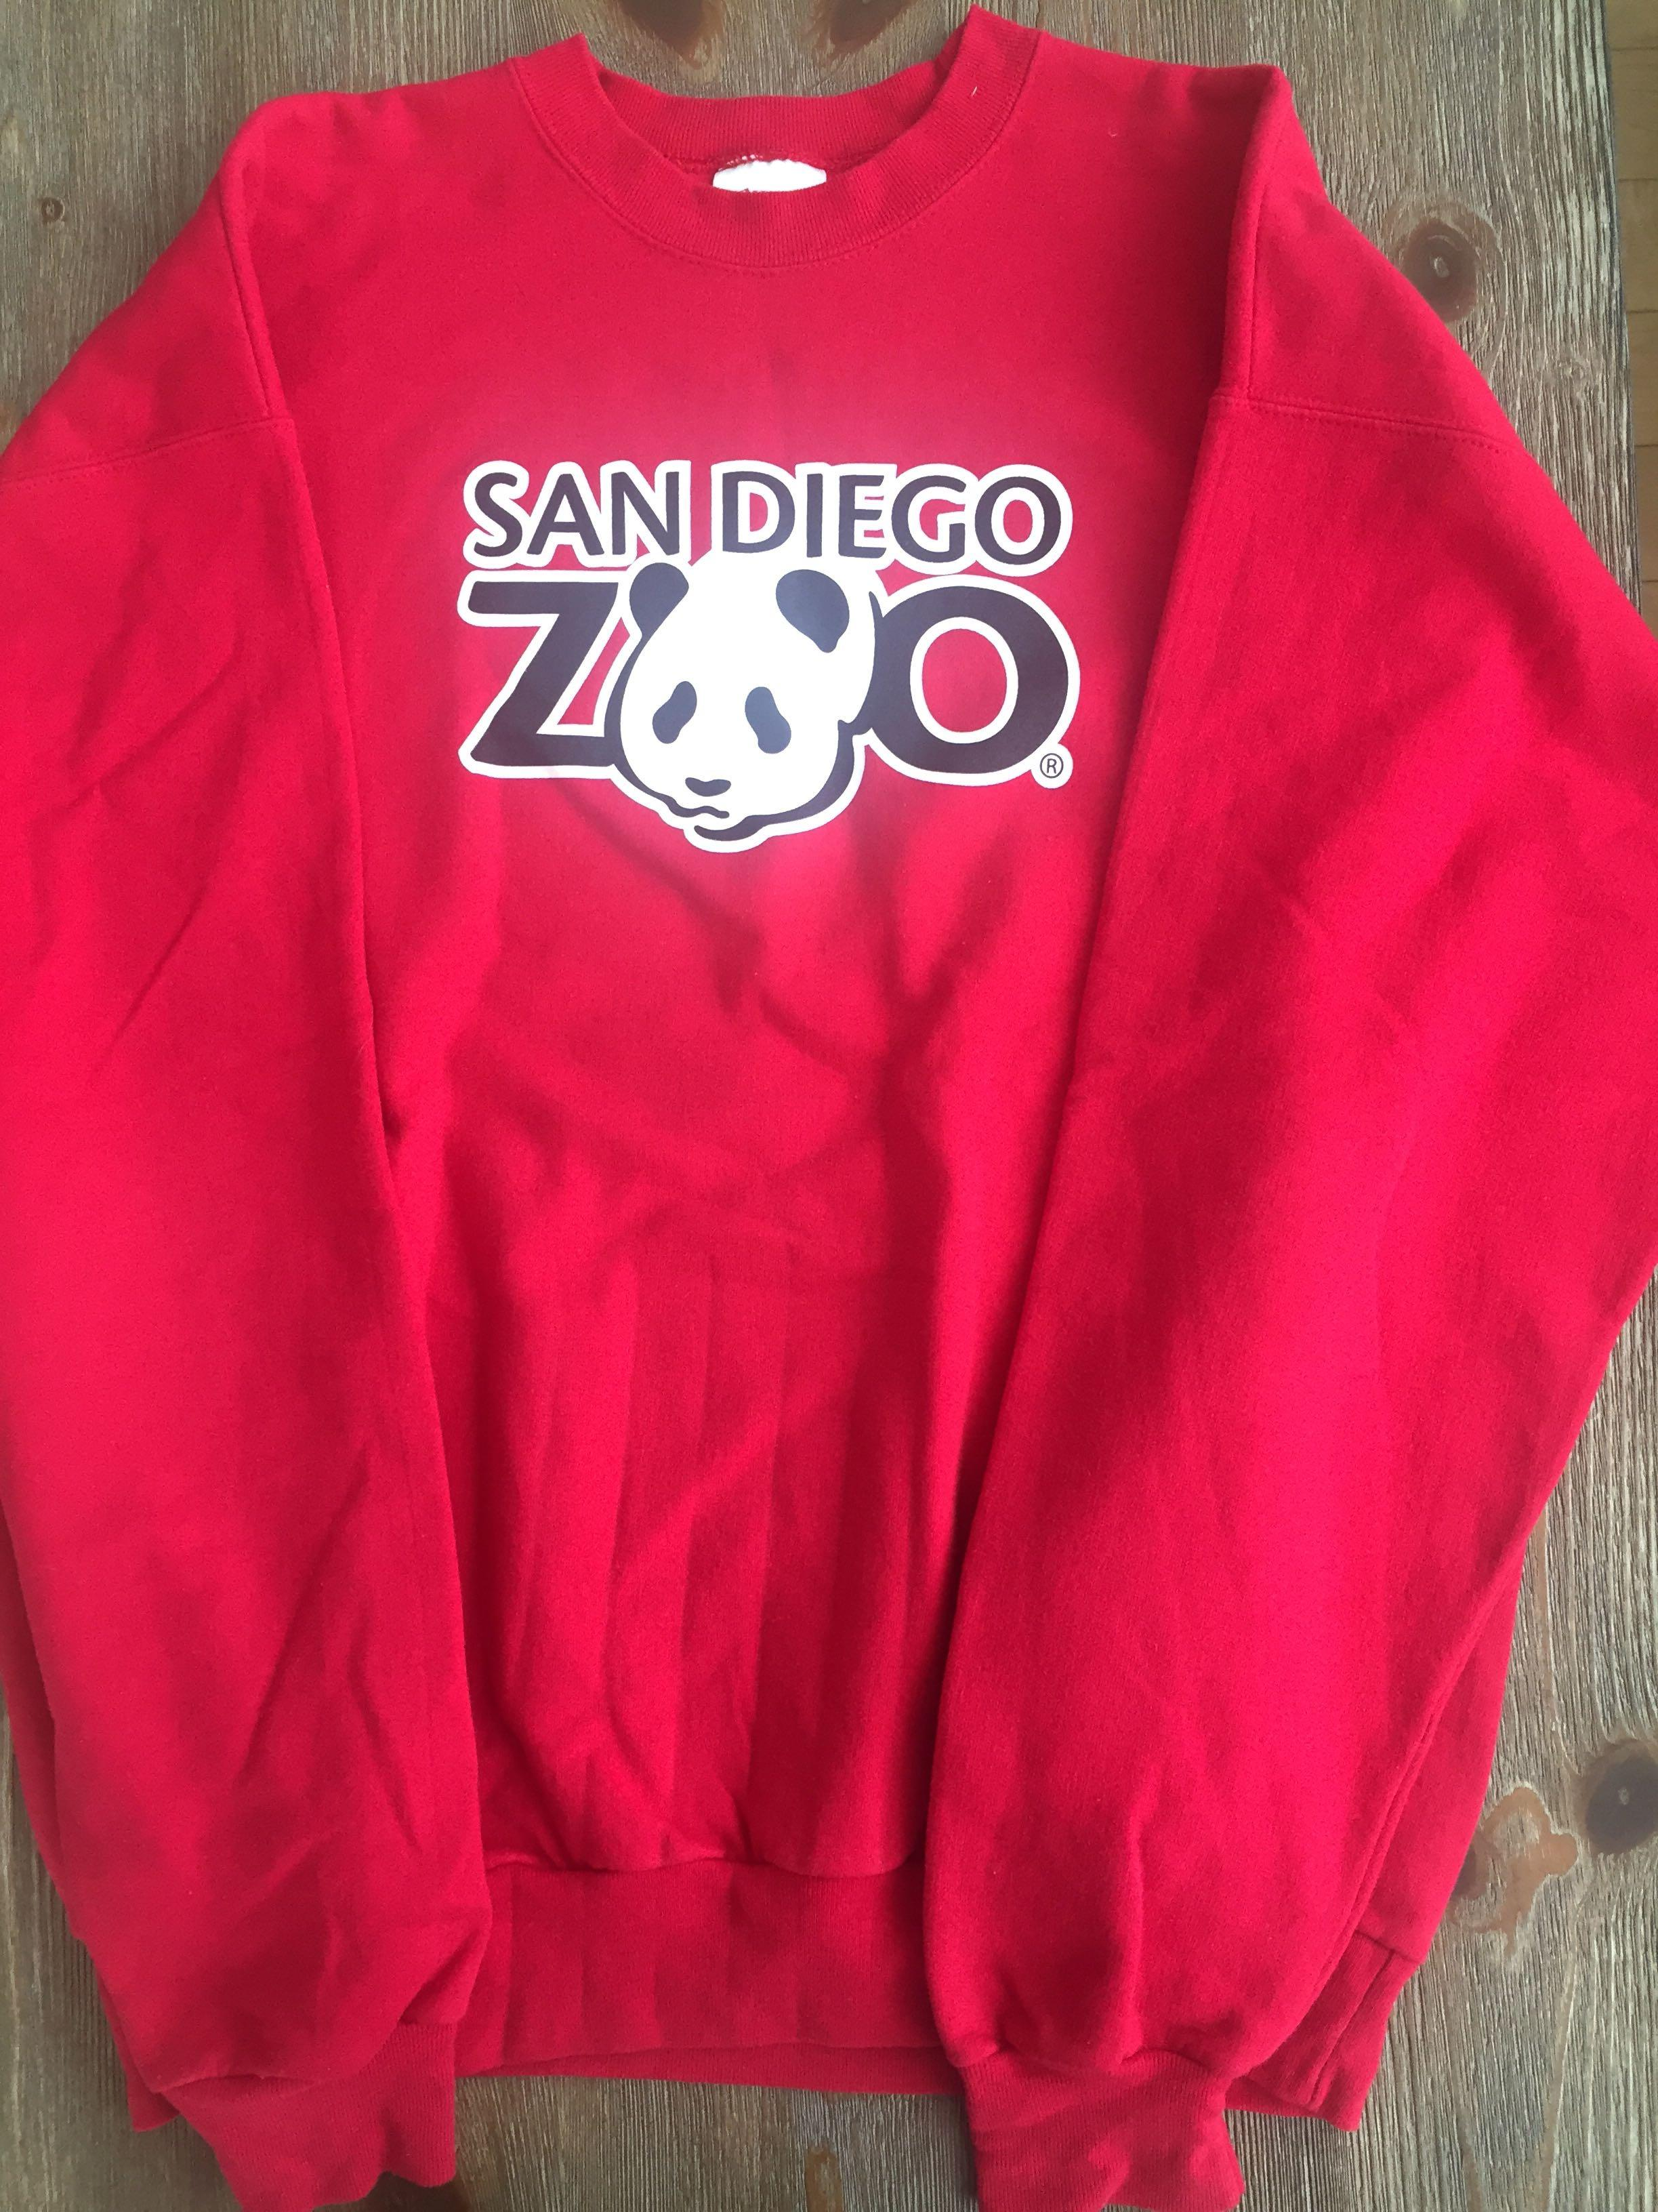 San Diego Zoo Sweater Size Large